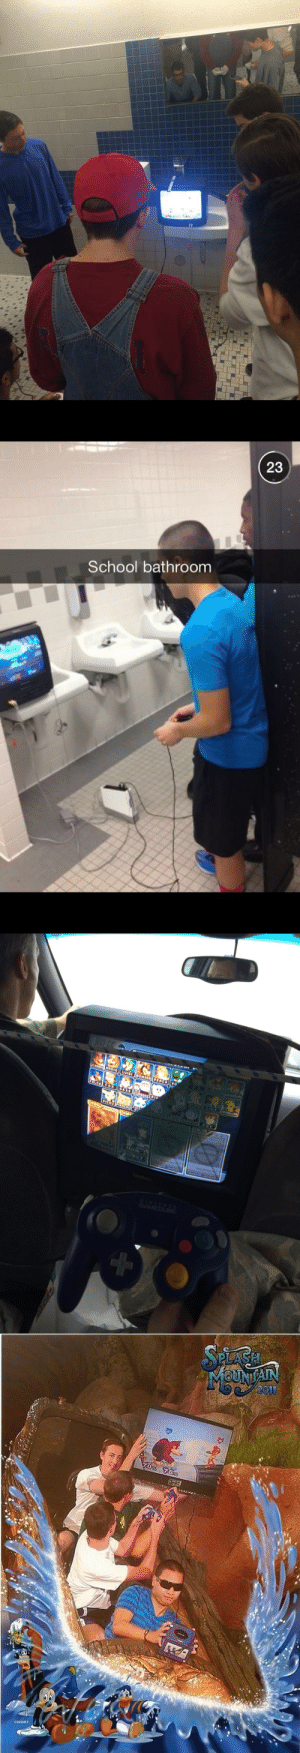 candygarnet:  daviddrawsgood: playing smash bros in weird places: the photoset they were taking gaming on the go before the switch, good on them : 23  School bathroom candygarnet:  daviddrawsgood: playing smash bros in weird places: the photoset they were taking gaming on the go before the switch, good on them